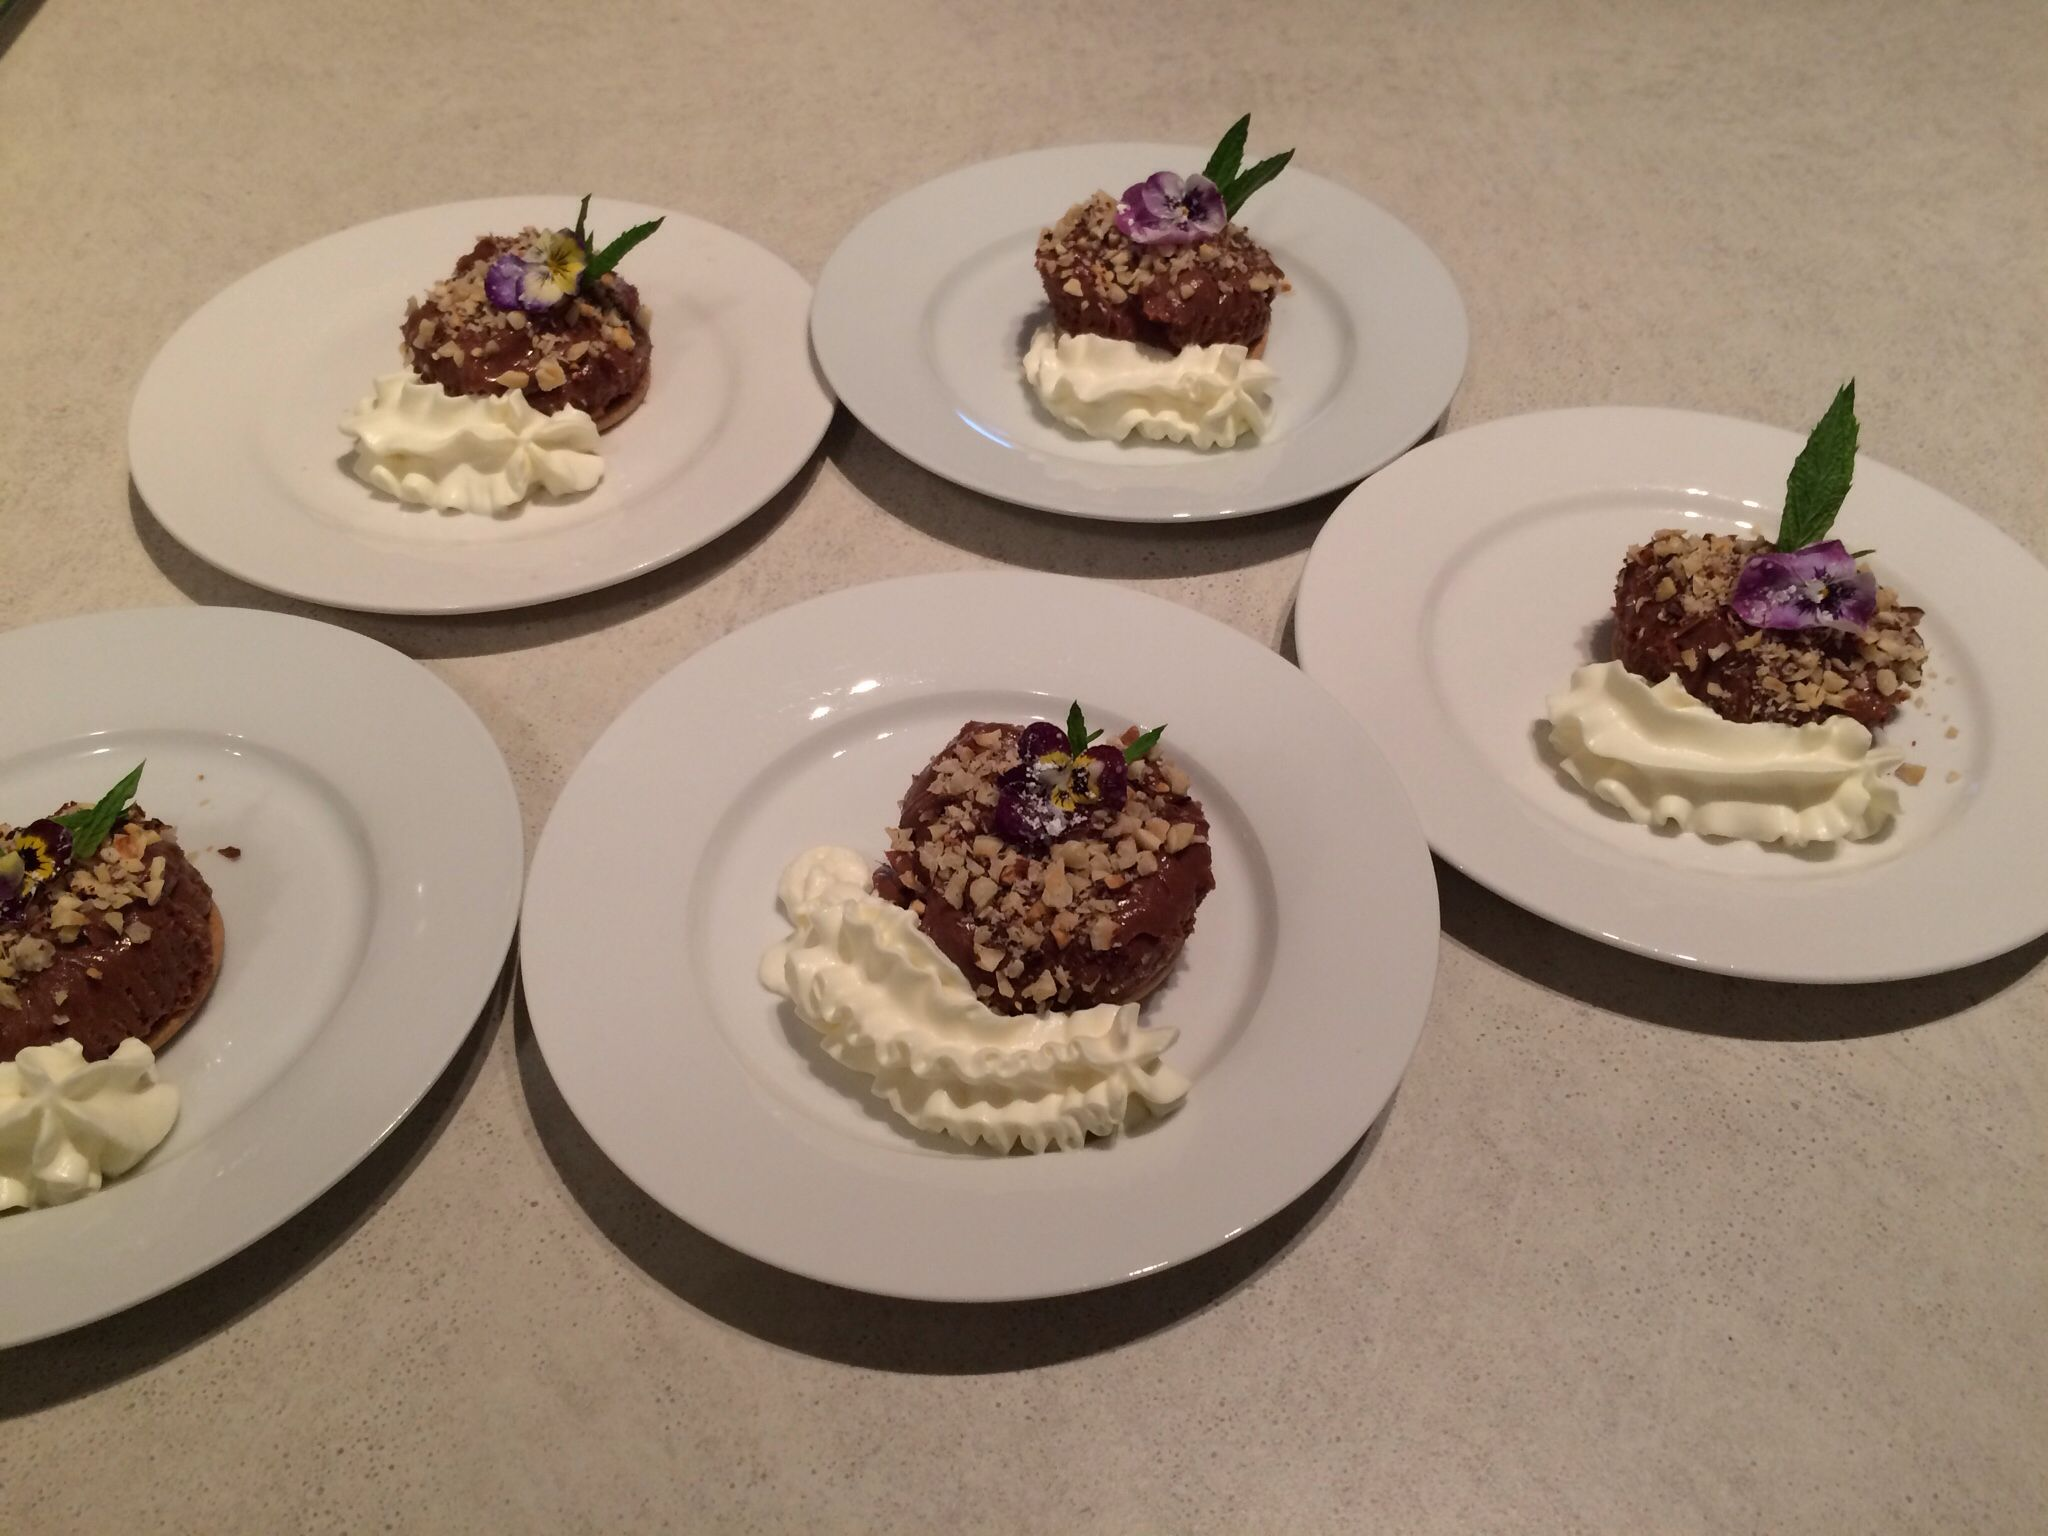 Nutella cheesecakes with toasted hazelnuts and cream